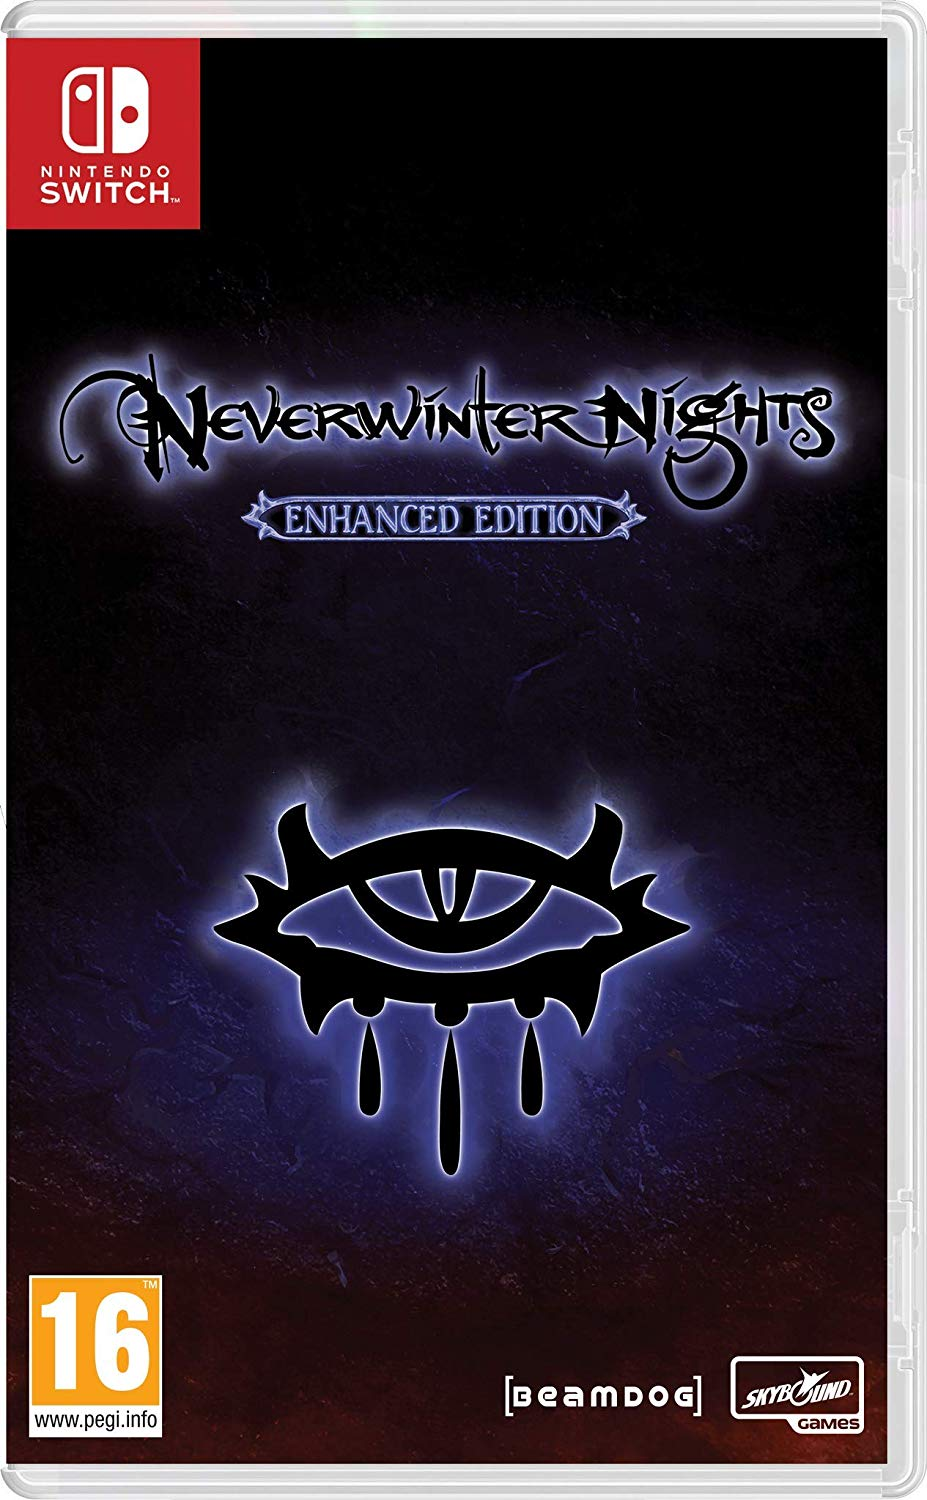 Neverwinter Nights Enhanced Edition (Nintendo Switch), Nintendo Switch, DVDMEGASTORE, DVDMEGASTORE